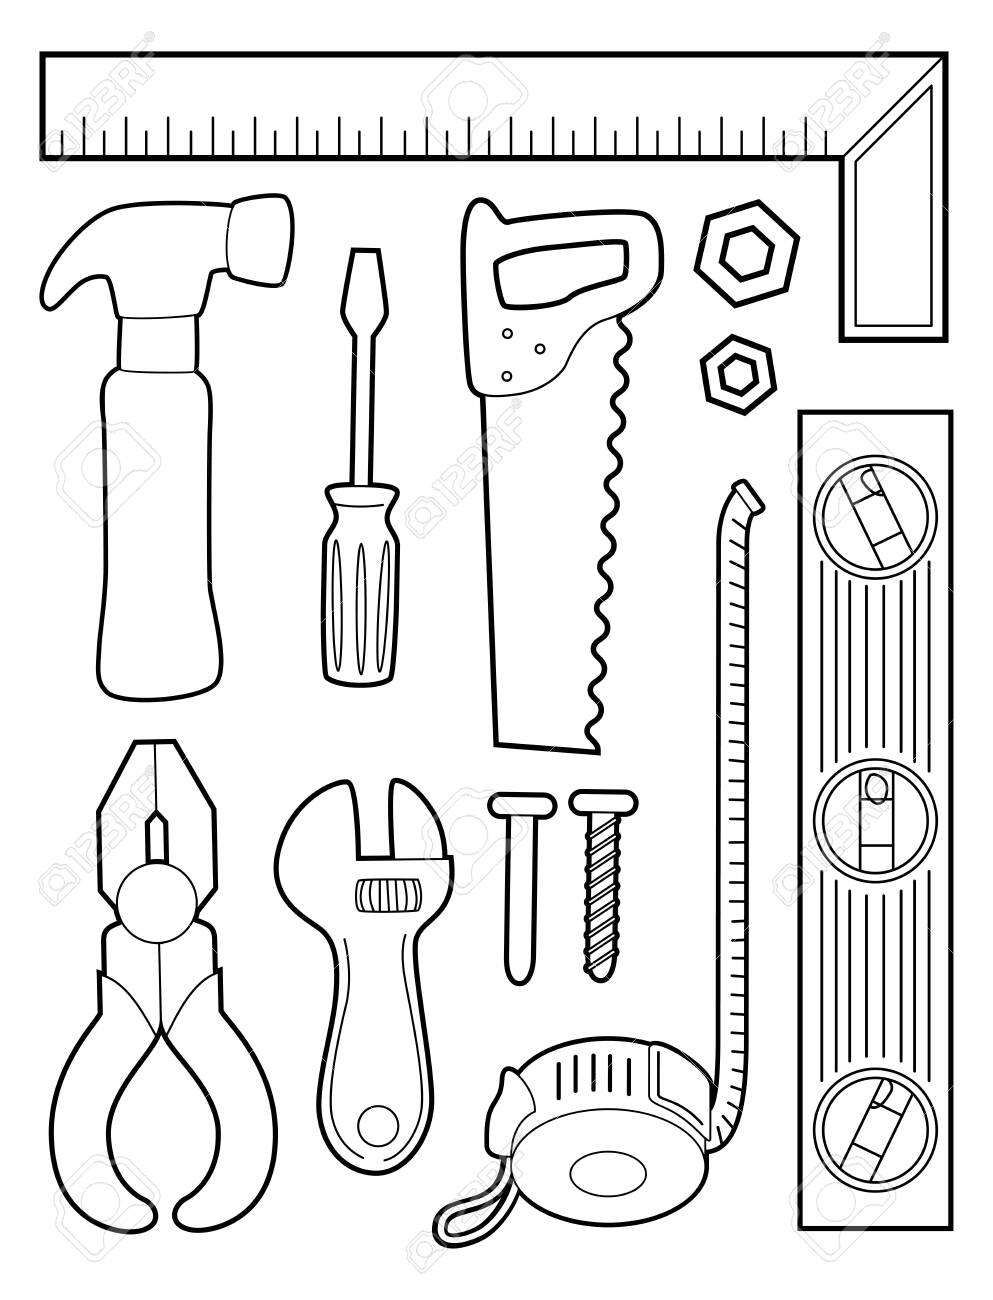 Illustration Of A Coloring Page Of Different Construction Tools Stock Photo Picture And Royalty Free Image Image 130760367